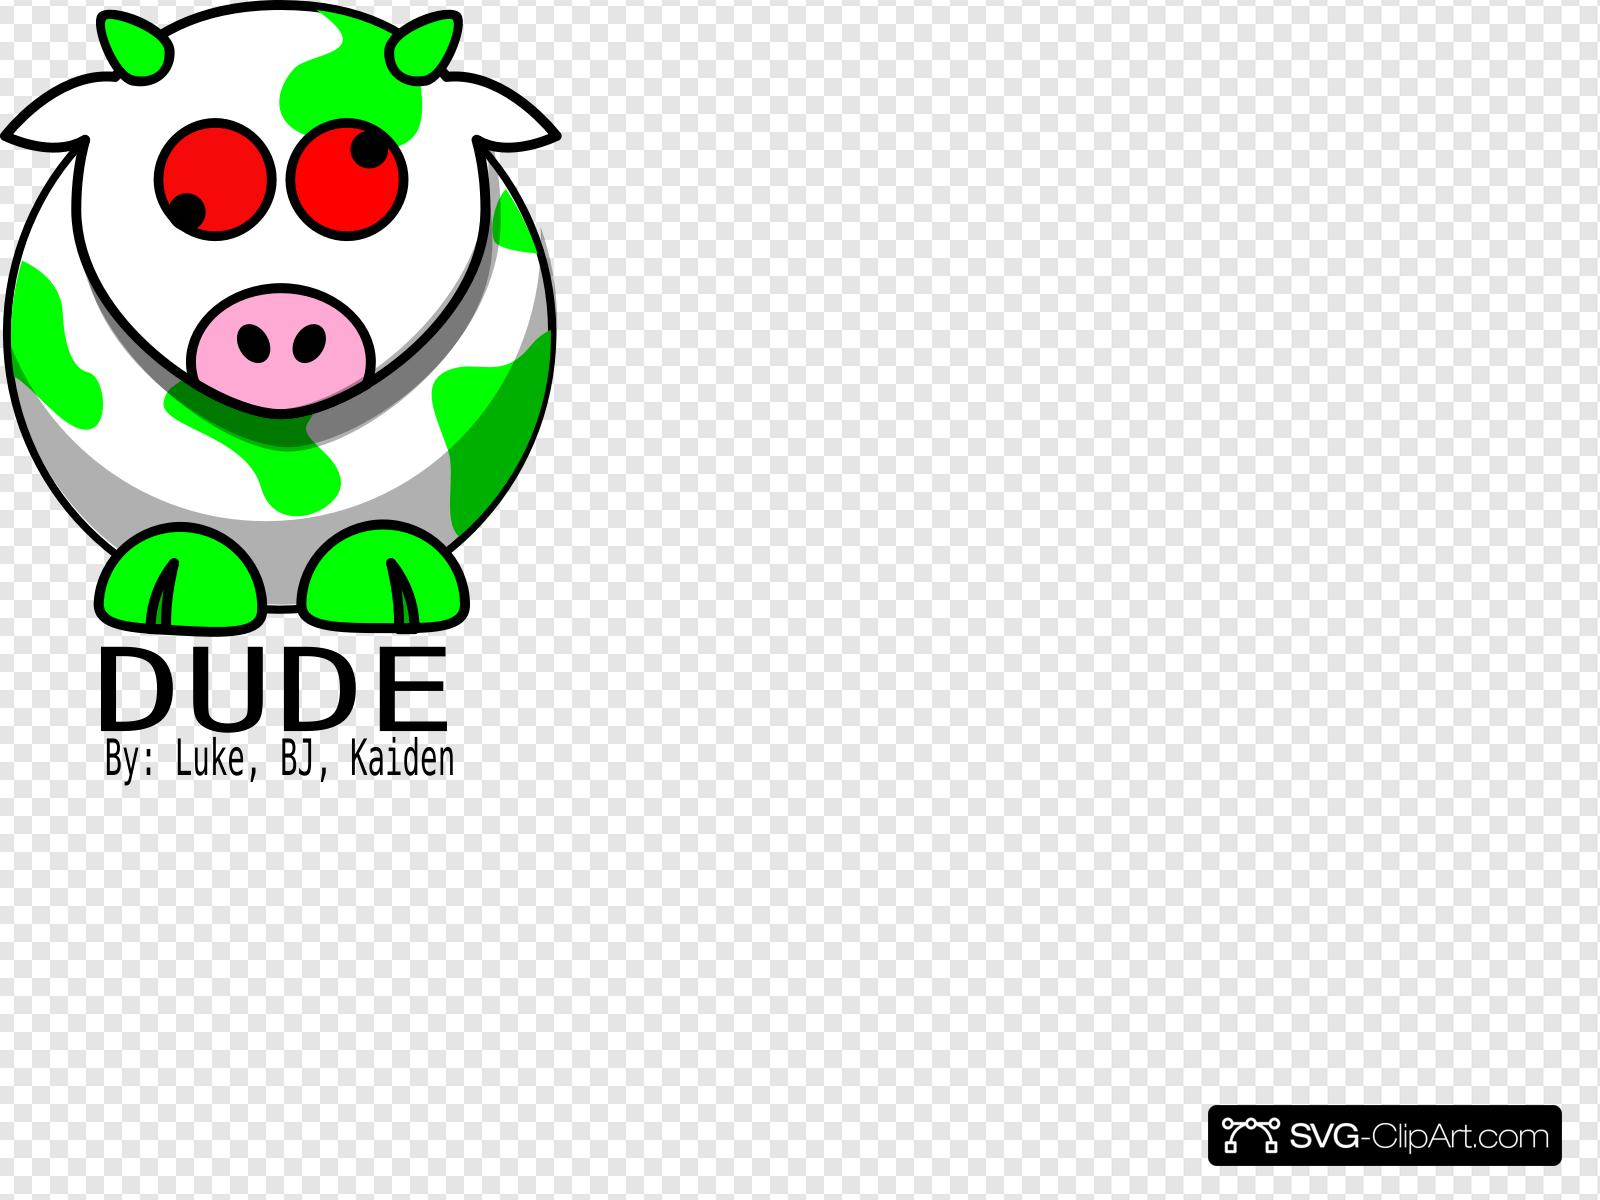 Green Cow Clip art, Icon and SVG.